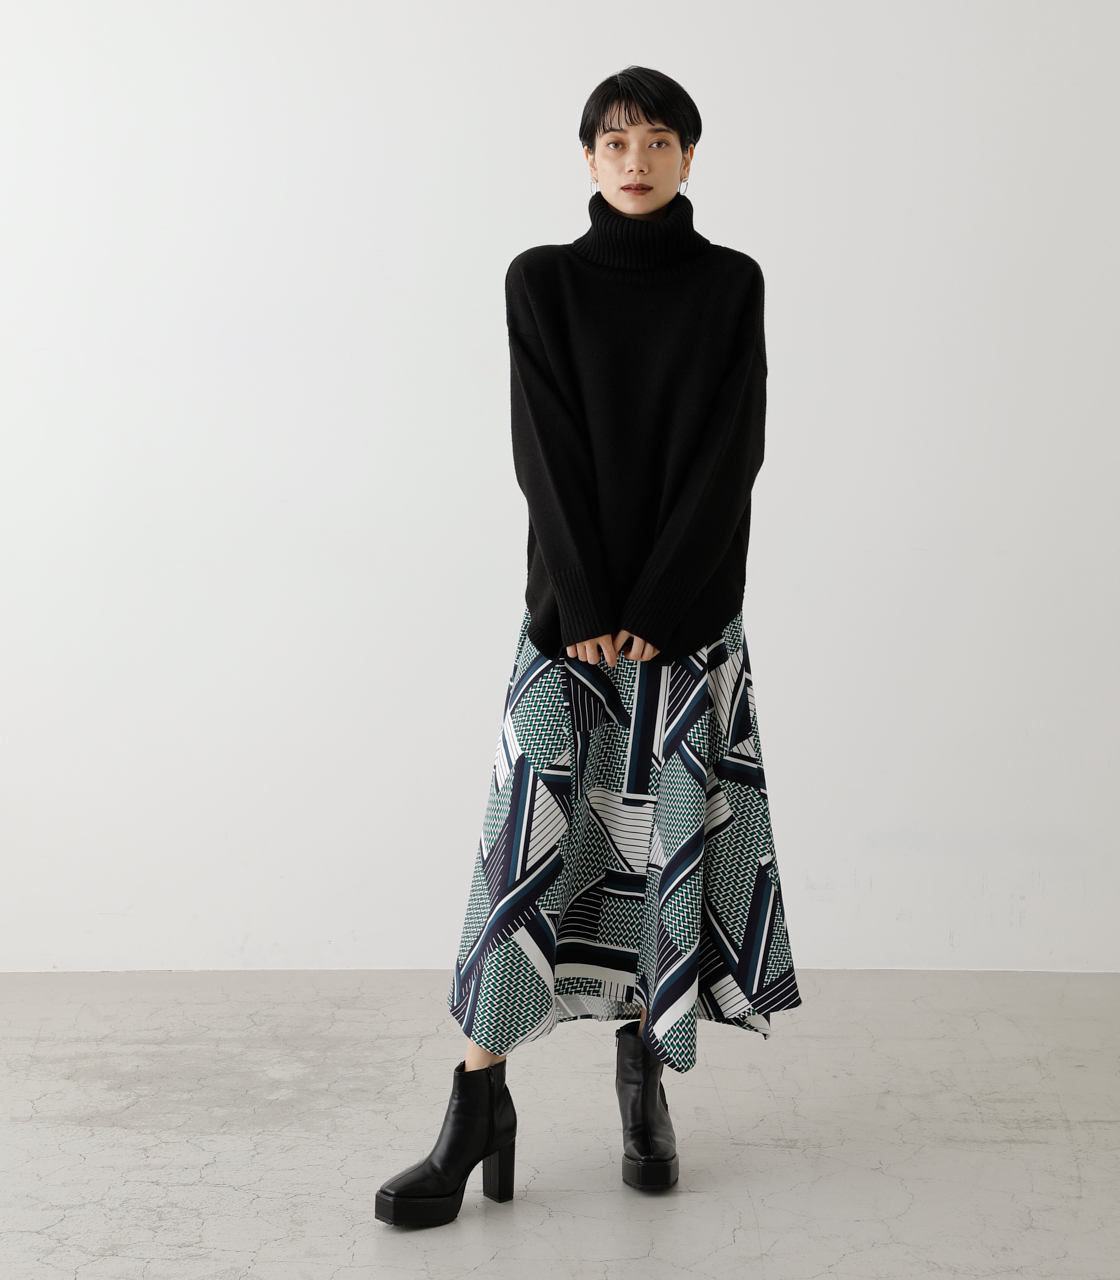 SCARF PATTERN SKIRT/スカーフパターンスカート 詳細画像 柄GRN 4